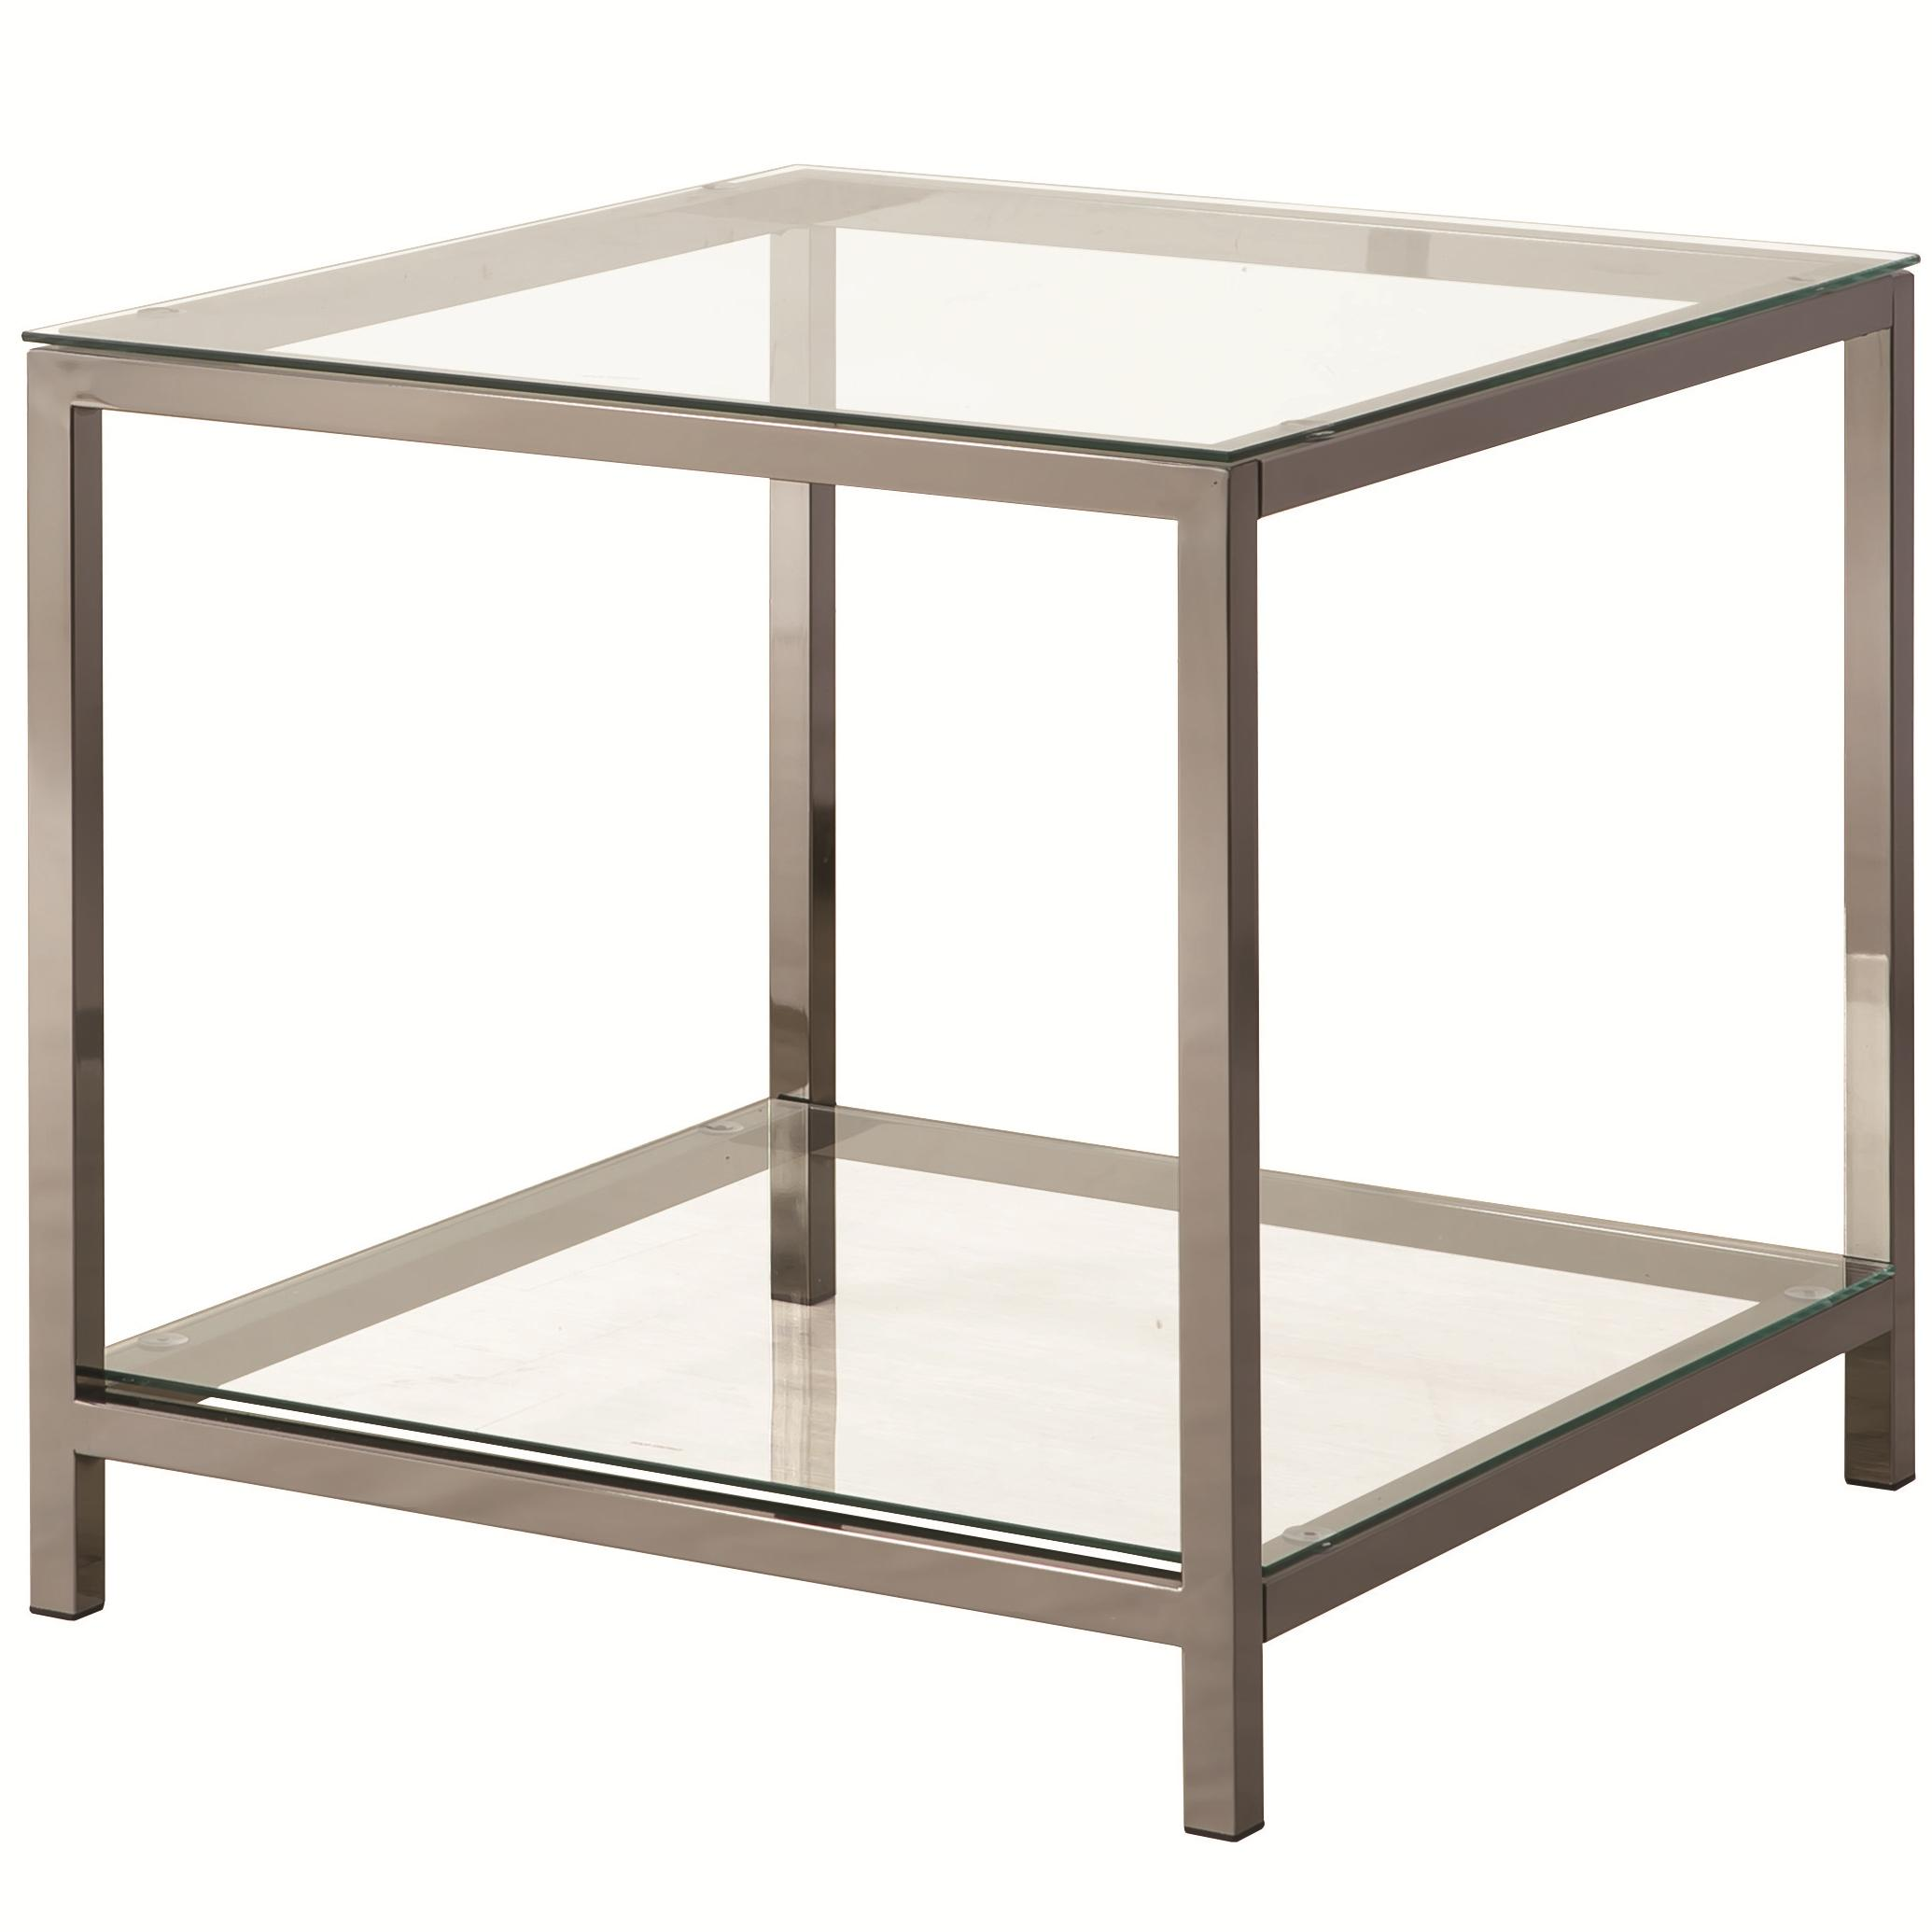 72022 End Table by Coaster at Prime Brothers Furniture